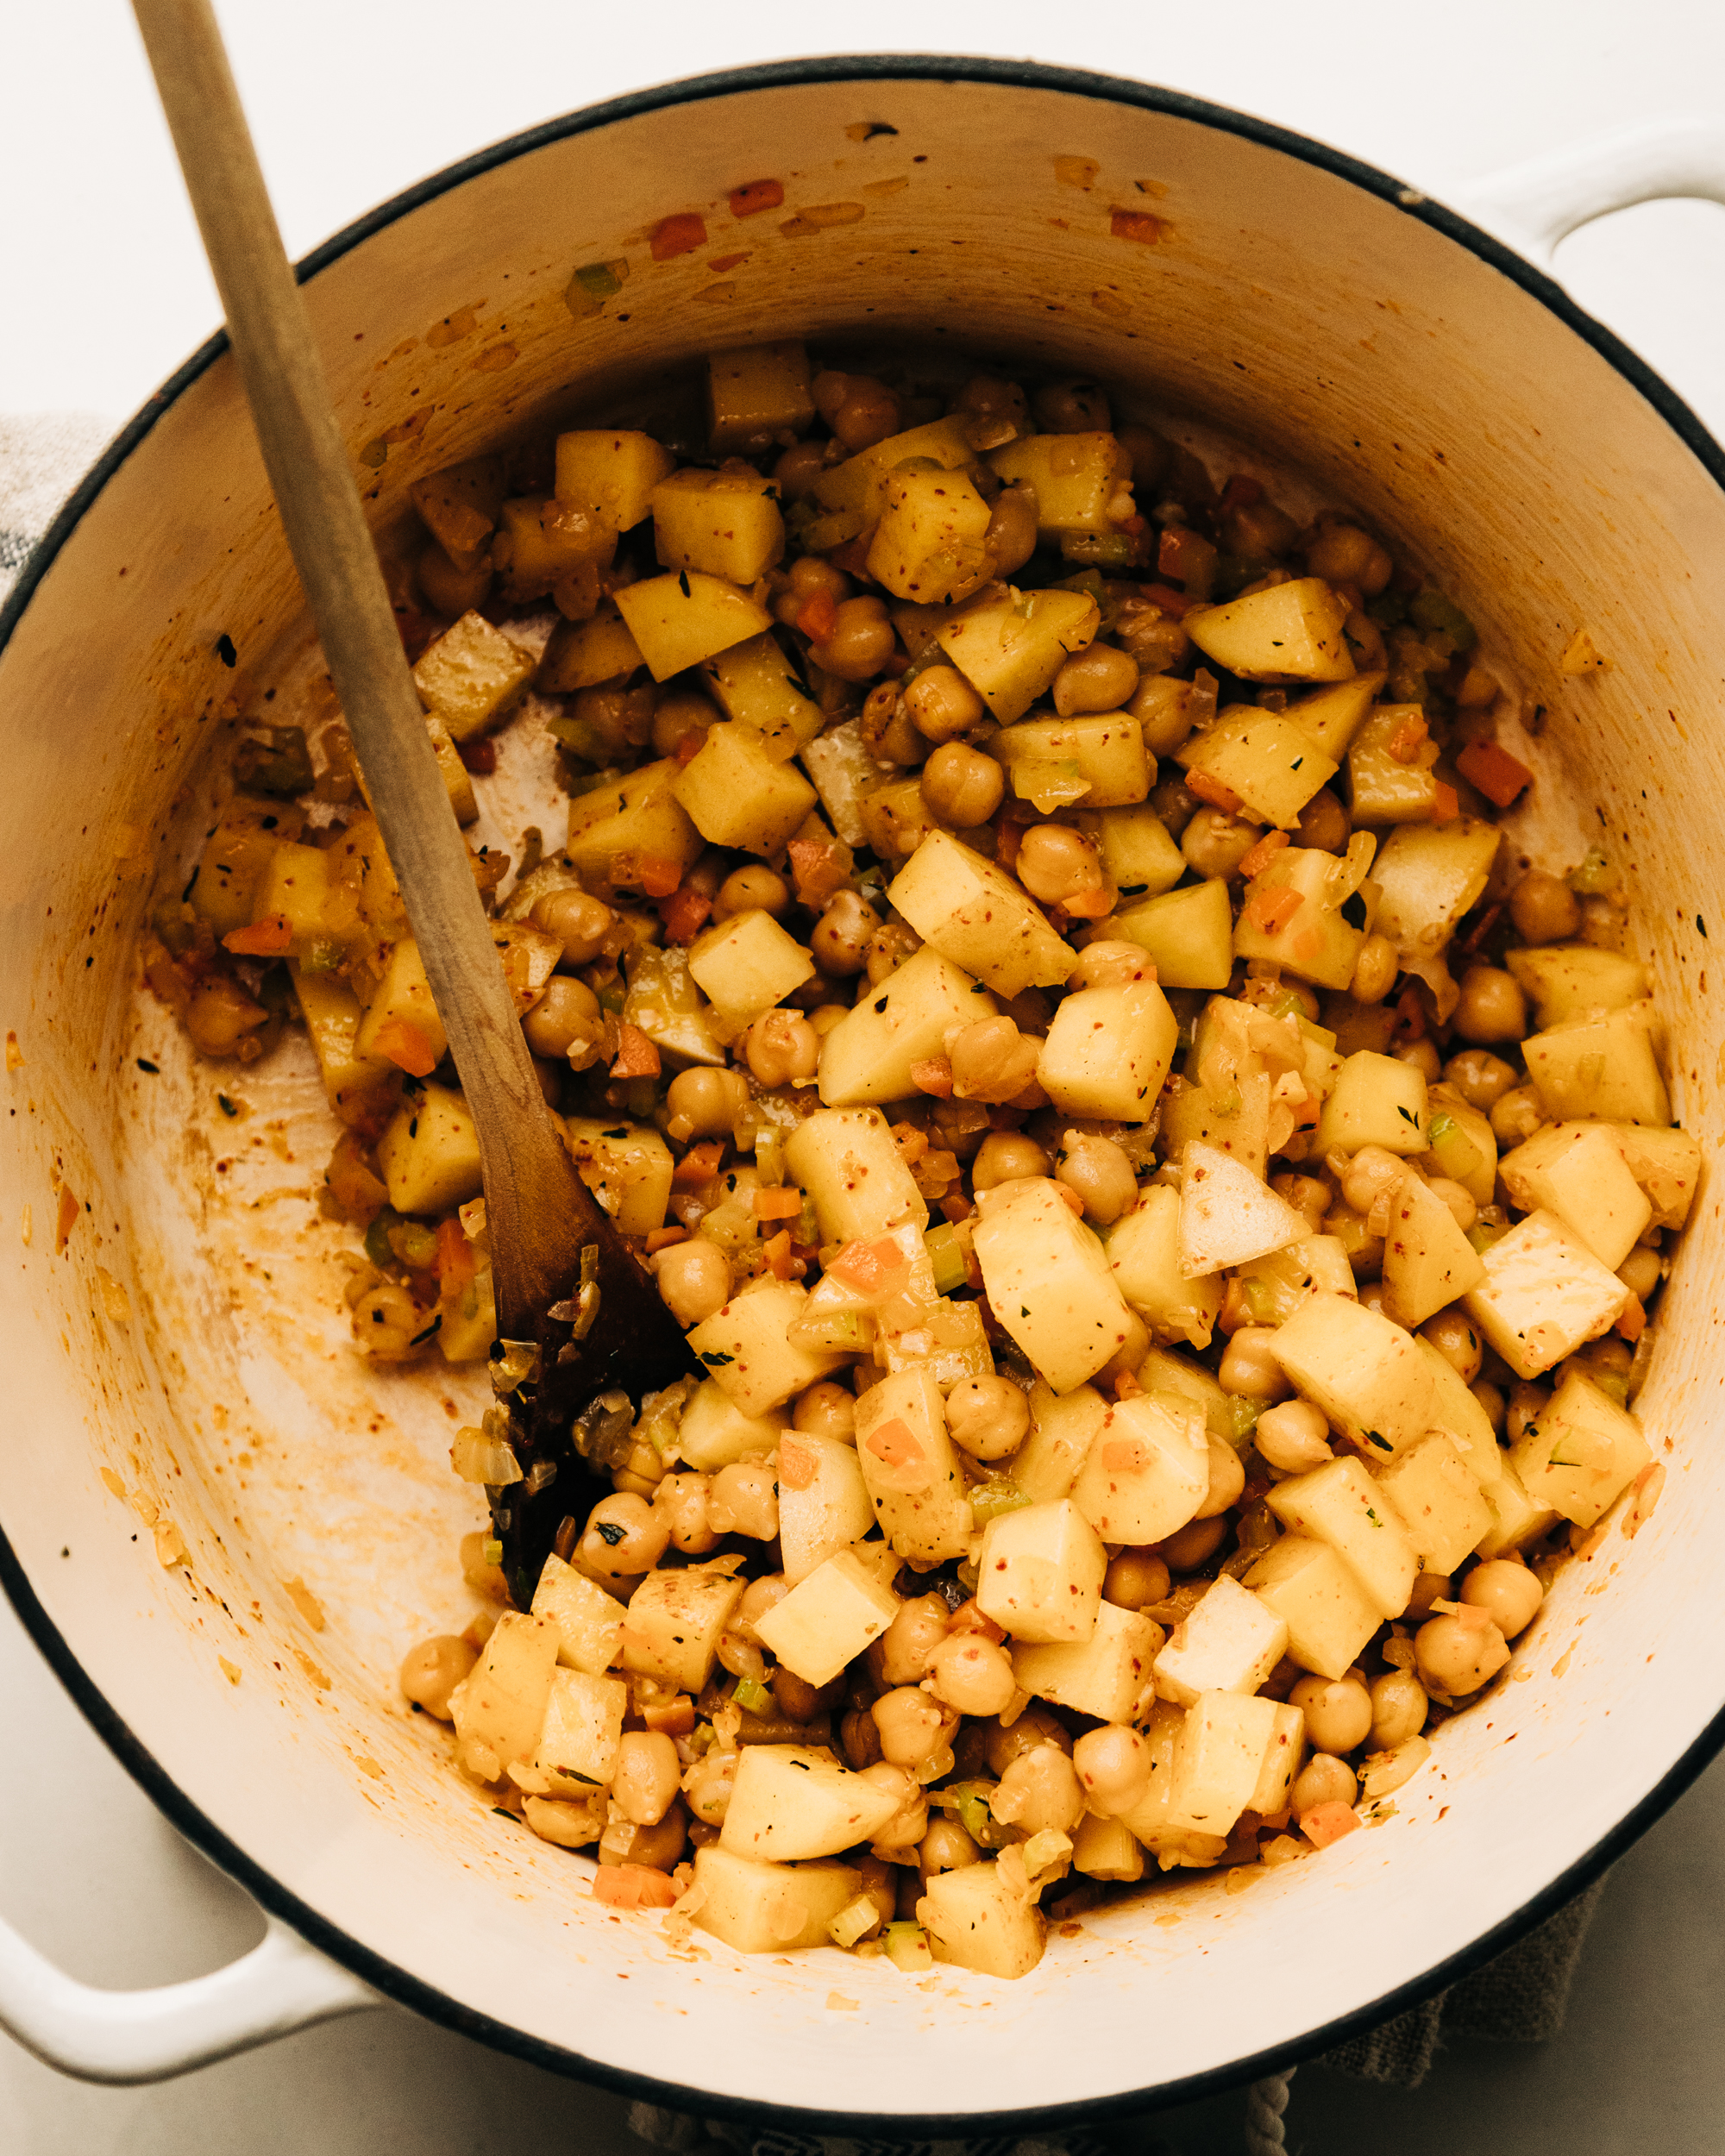 An overhead shot of sautéed chickpeas and potatoes in a white dutch oven-style pot.